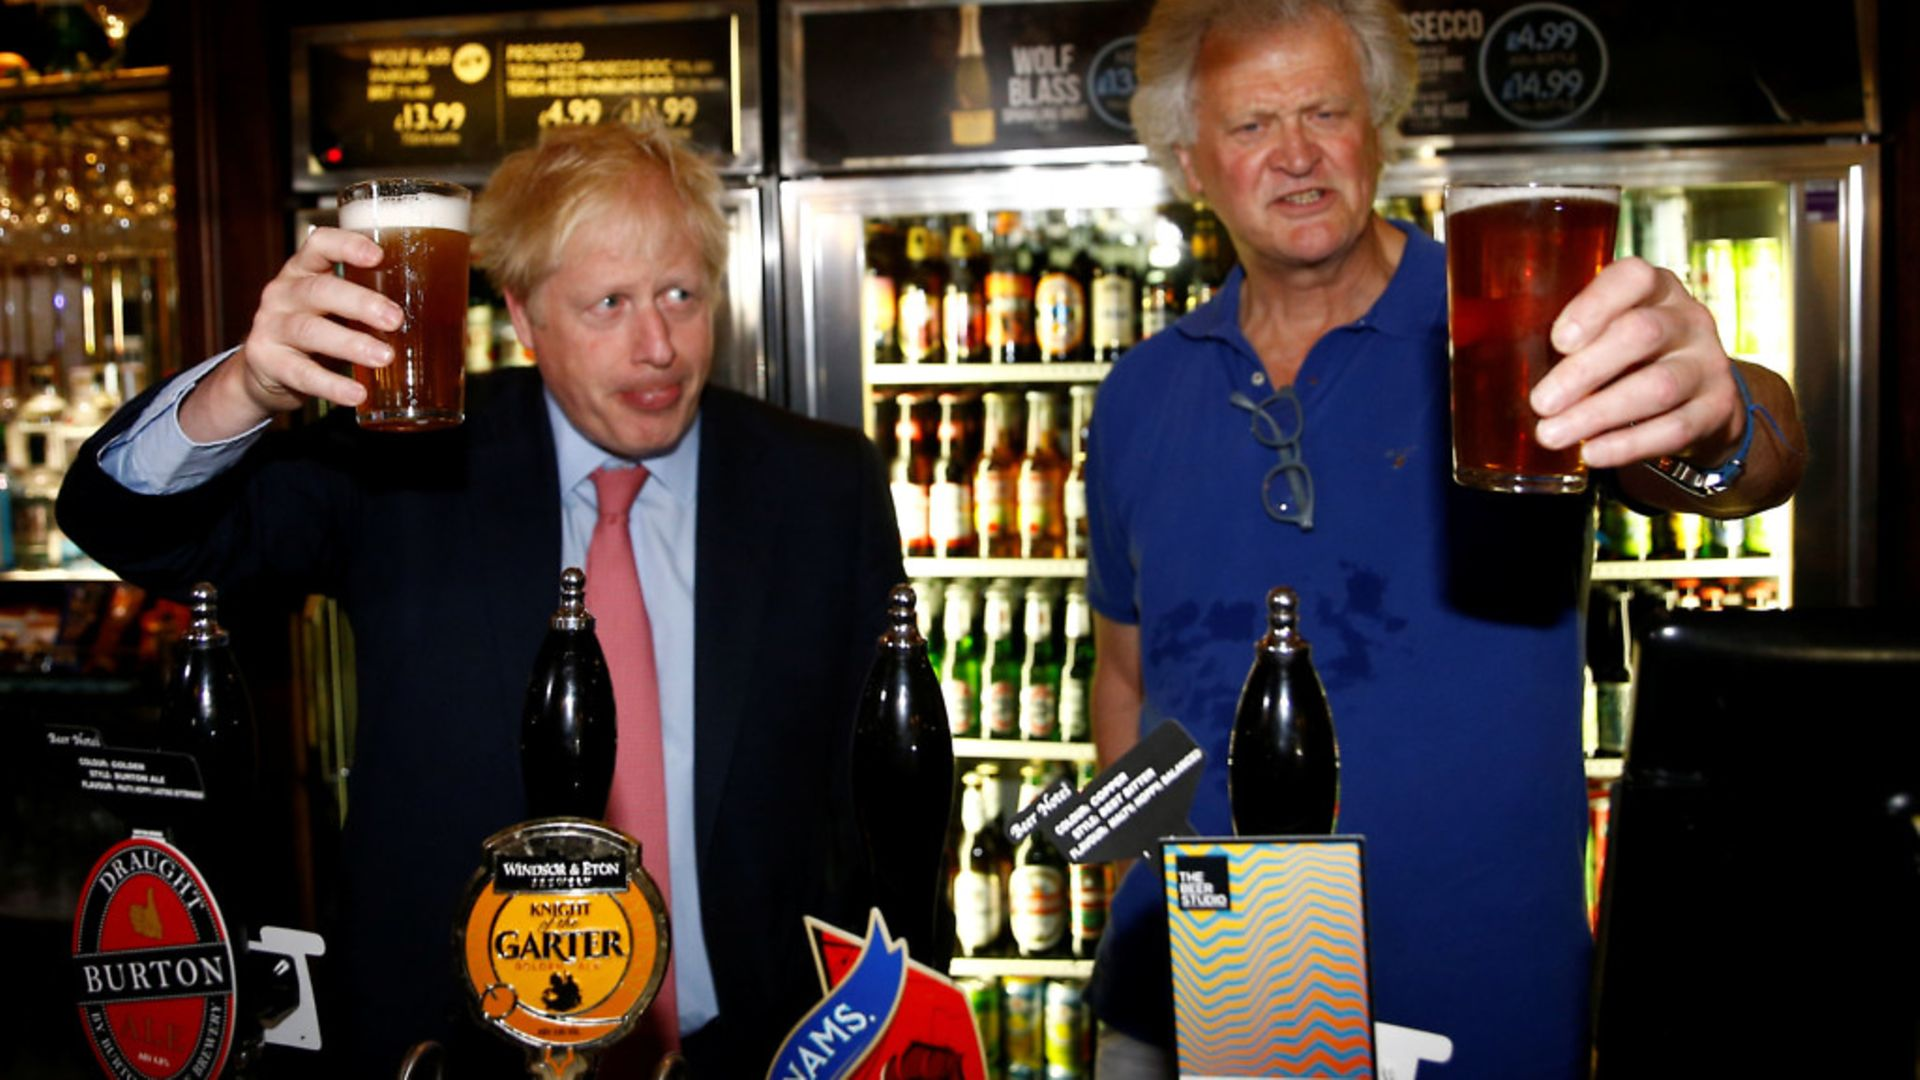 Boris Johnson during a visit to Wetherspoons Metropolitan Bar in London with Tim Martin, Chairman of JD Wetherspoon - Credit: PA